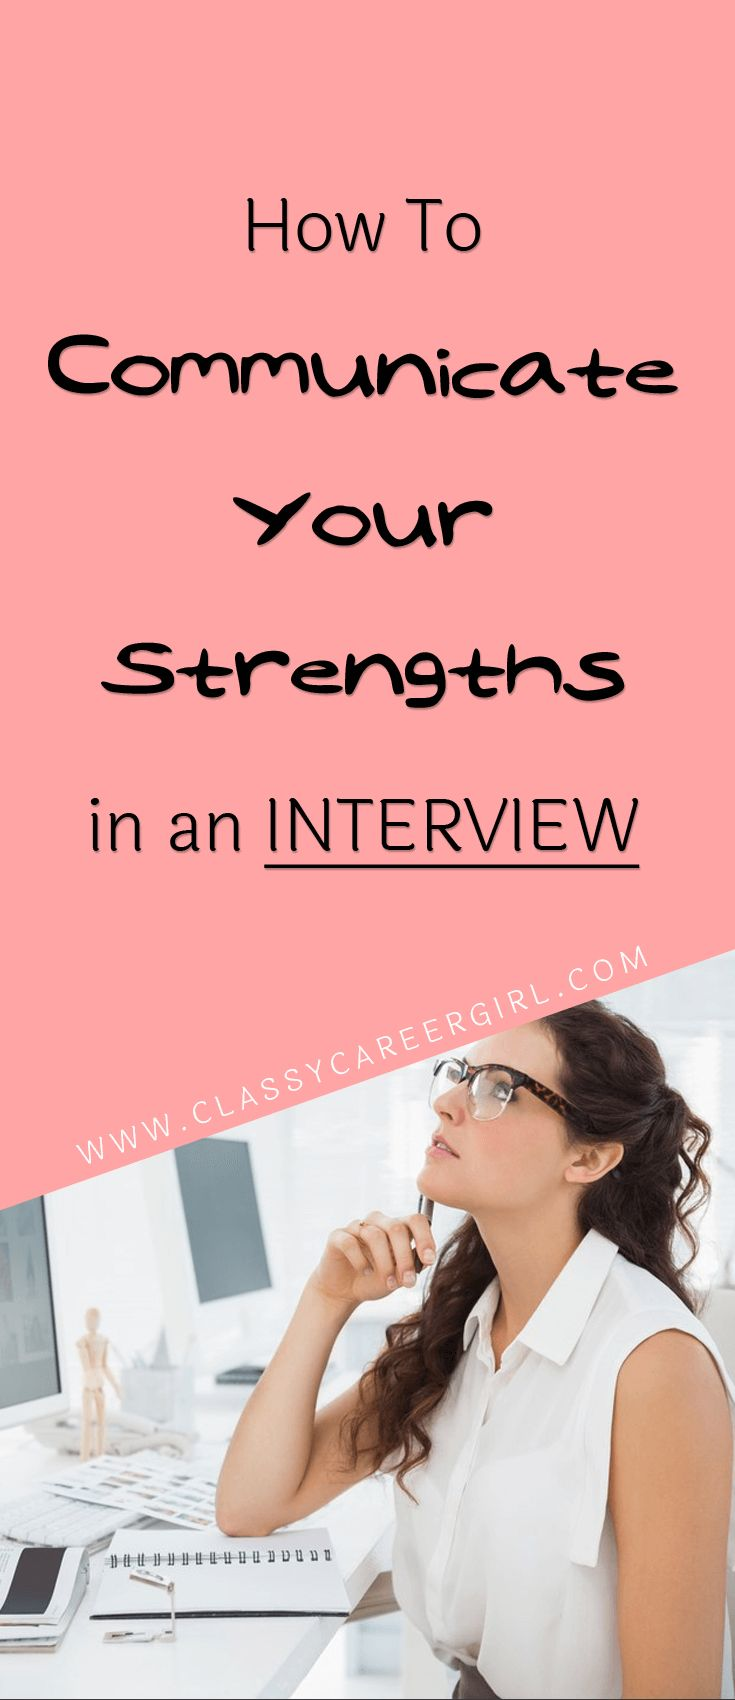 How To Communicate Your Strengths in an Interview